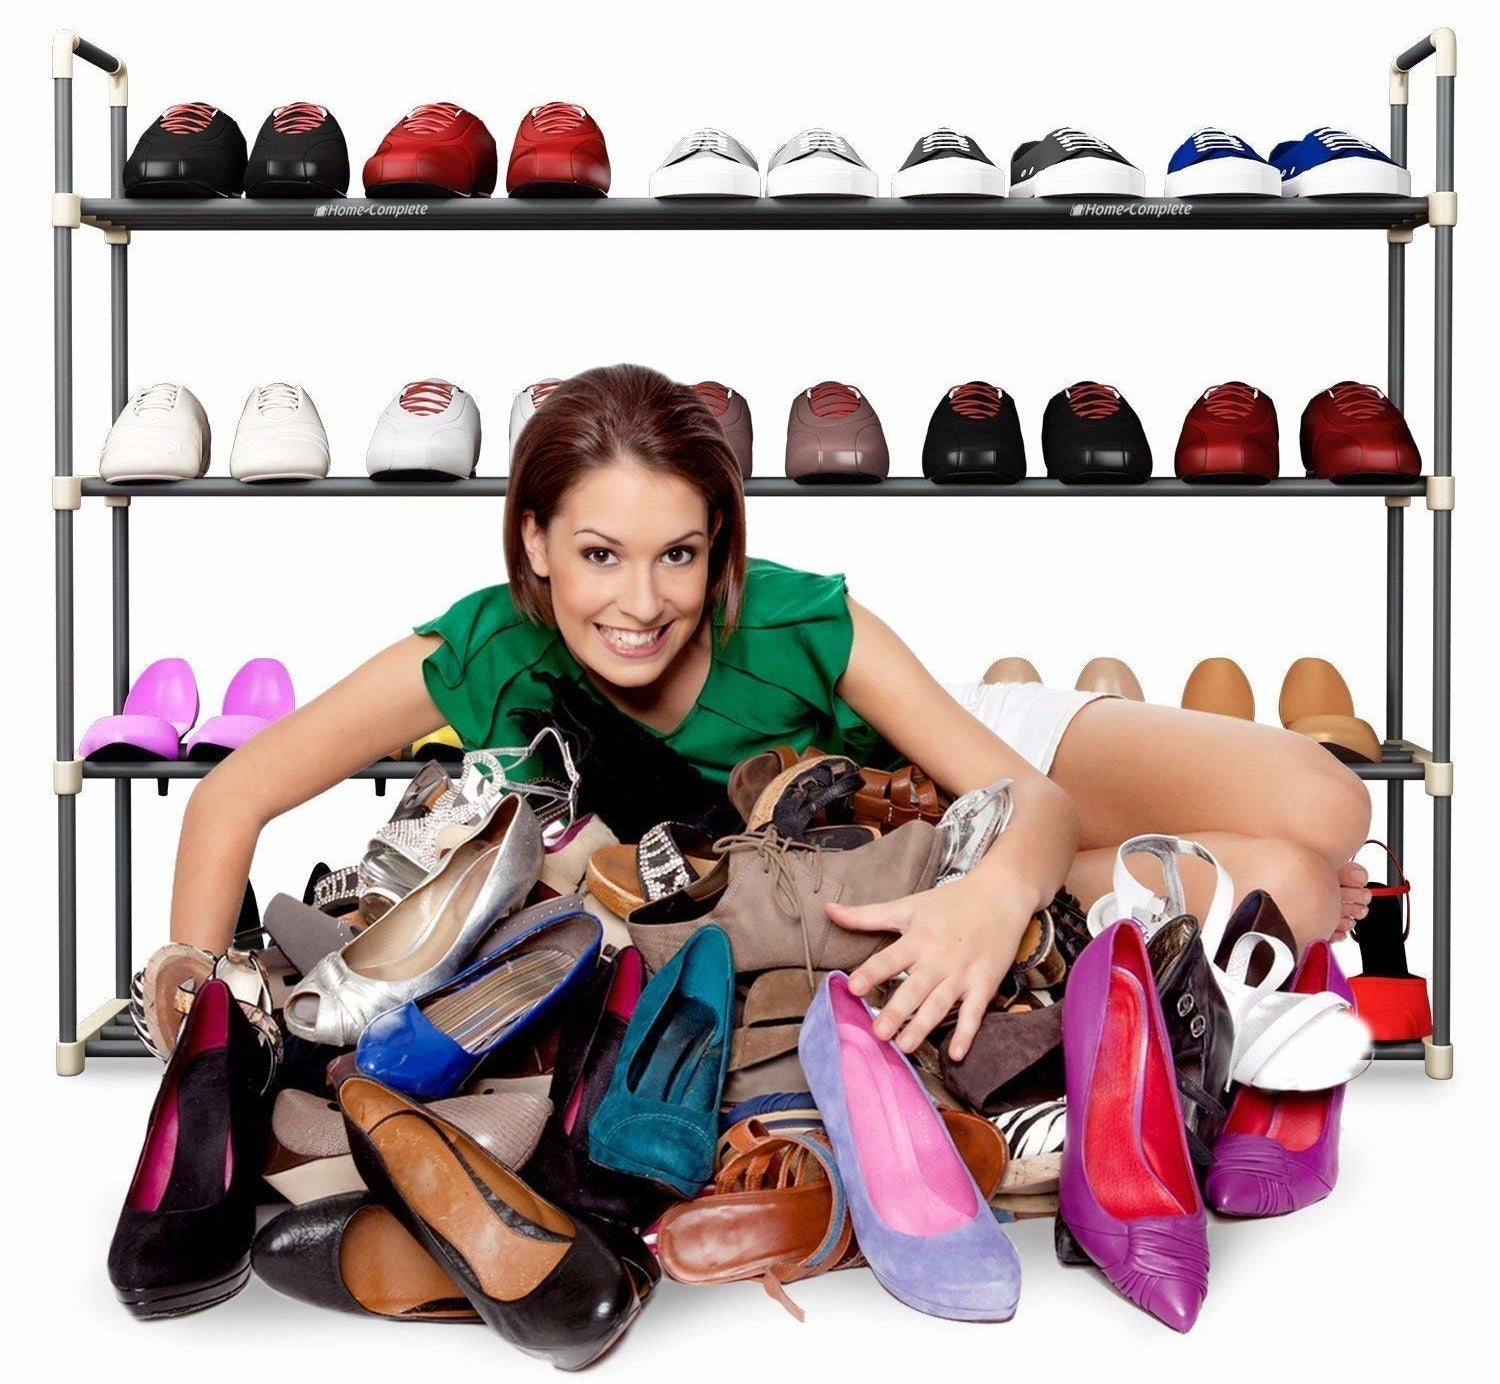 A woman clutching shoes and smiling, with the four-tier rack with shoes behind her